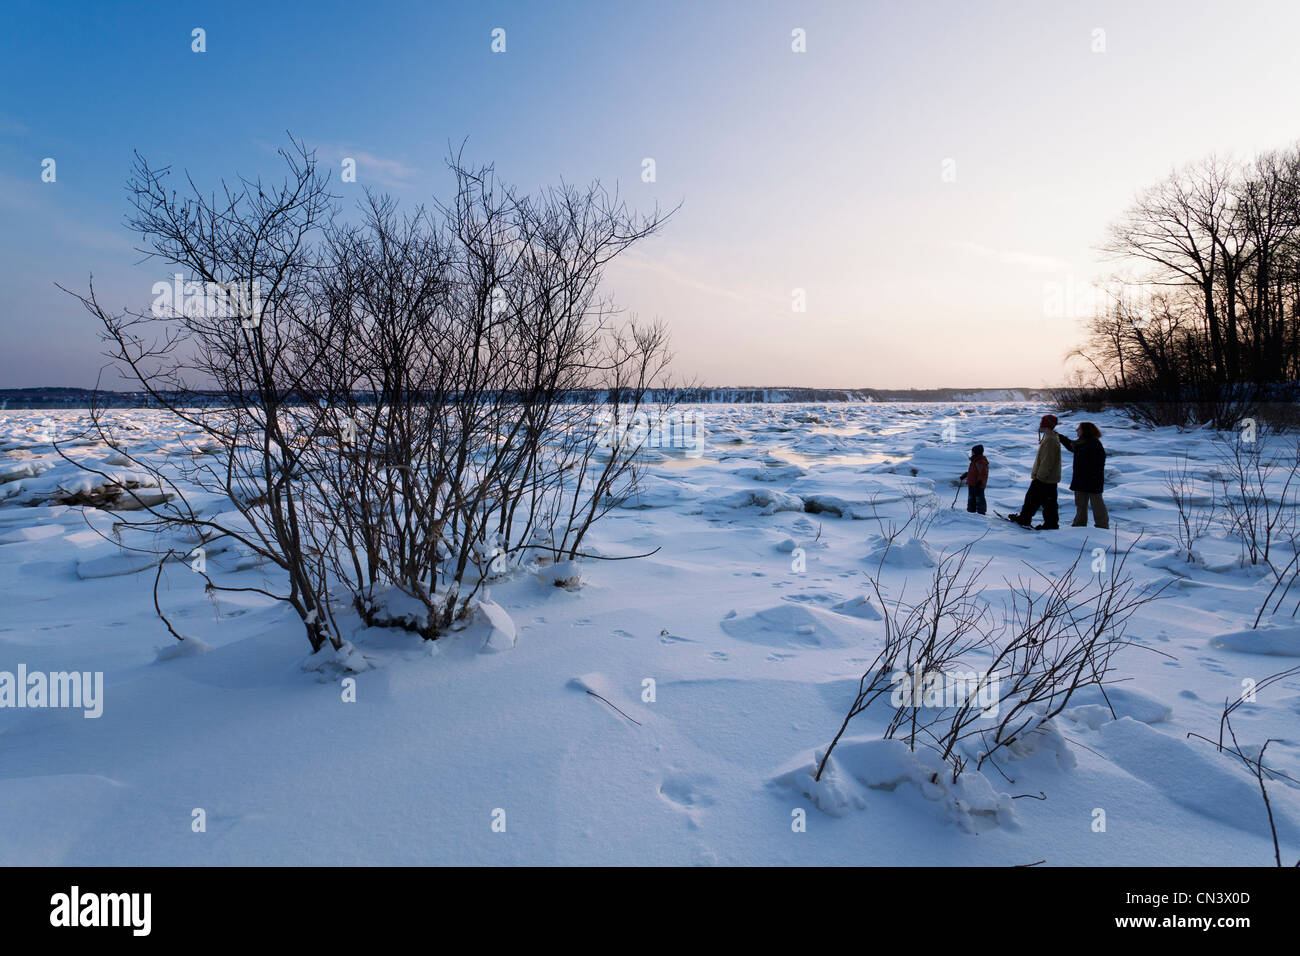 Canada, Quebec province, Quebec, the banks of the St Lawrence River frozen in winter, family snowshoe hike - Stock Image